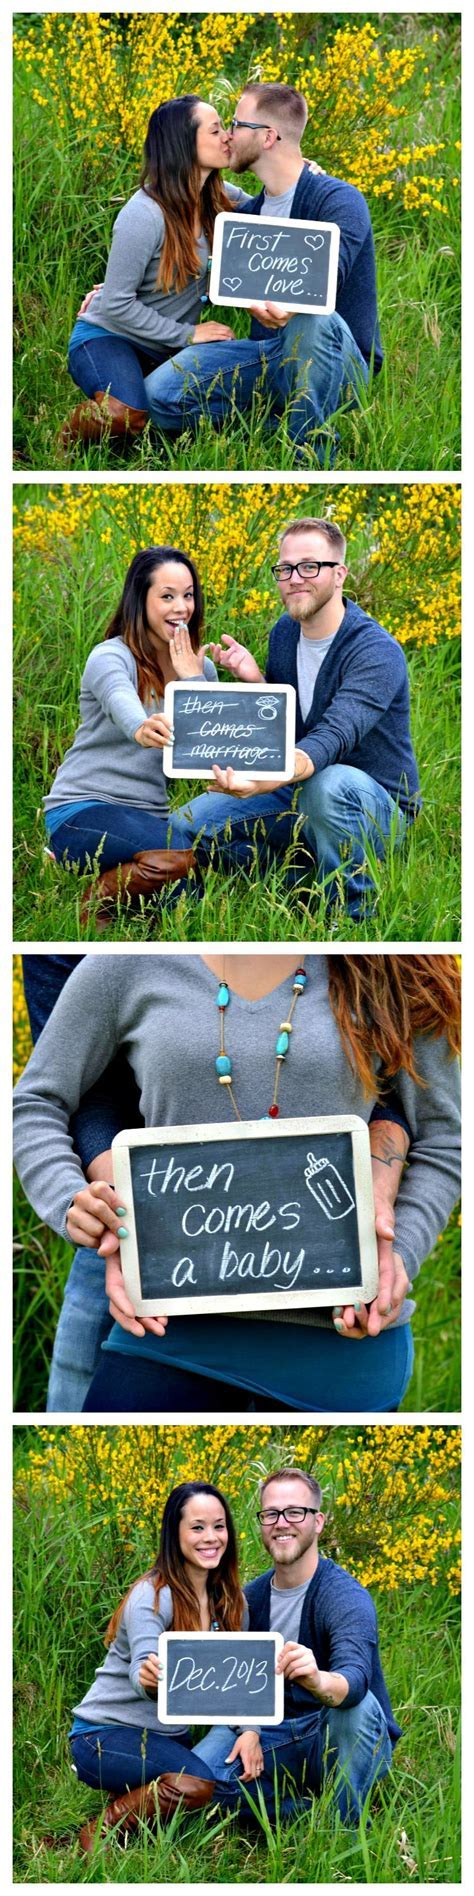 My boyfriend and I are expecting our first baby!! My best